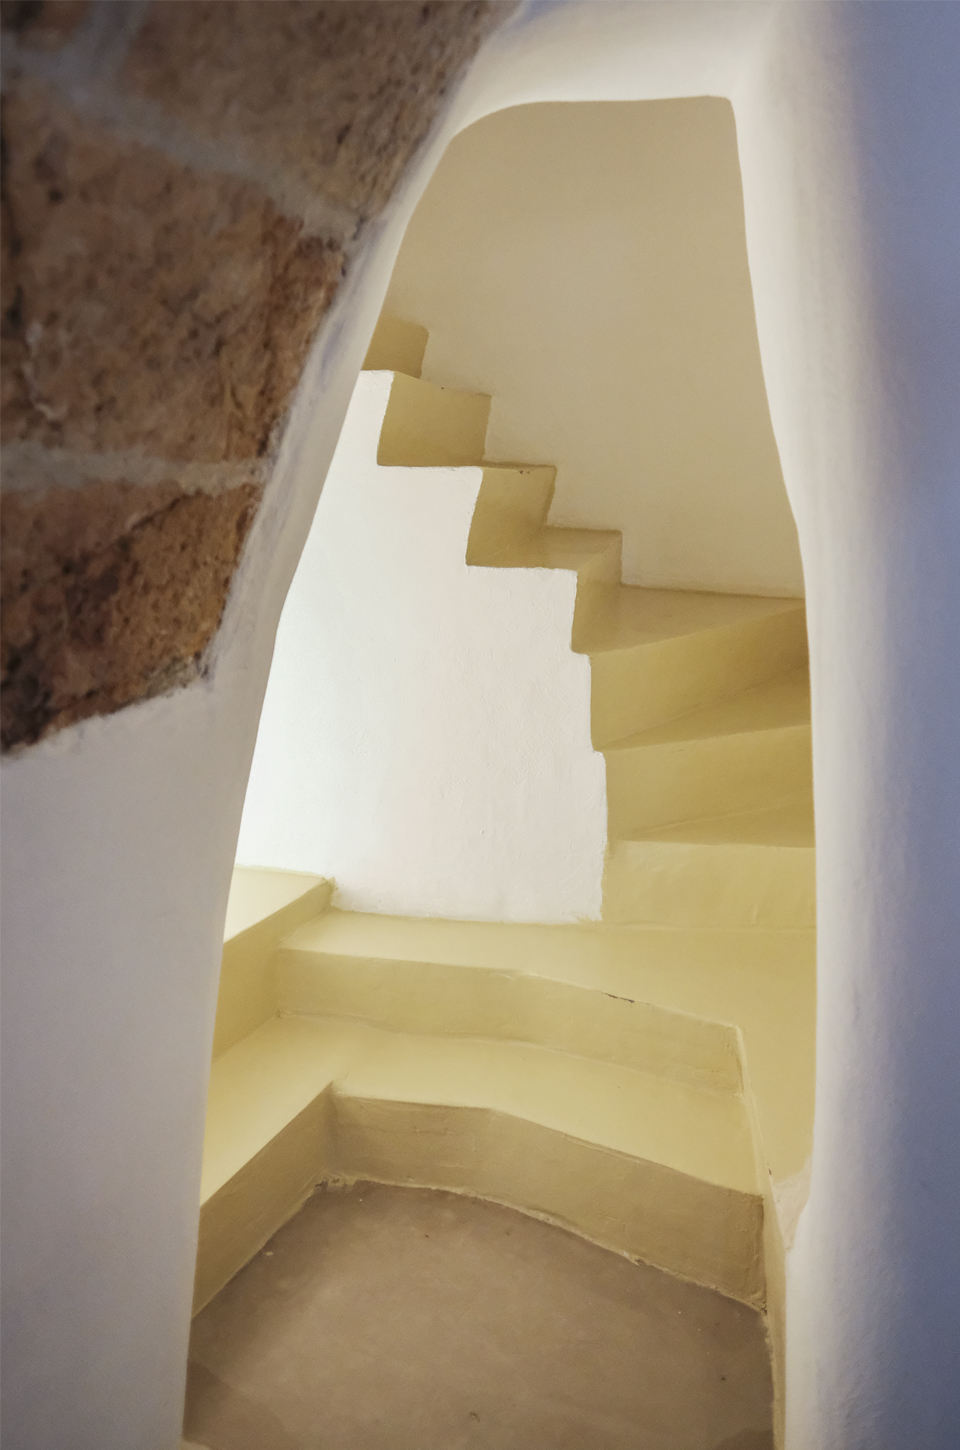 Stairs and cave formation in the aquapietra room of the aquamarea hotel hotel in Polignano